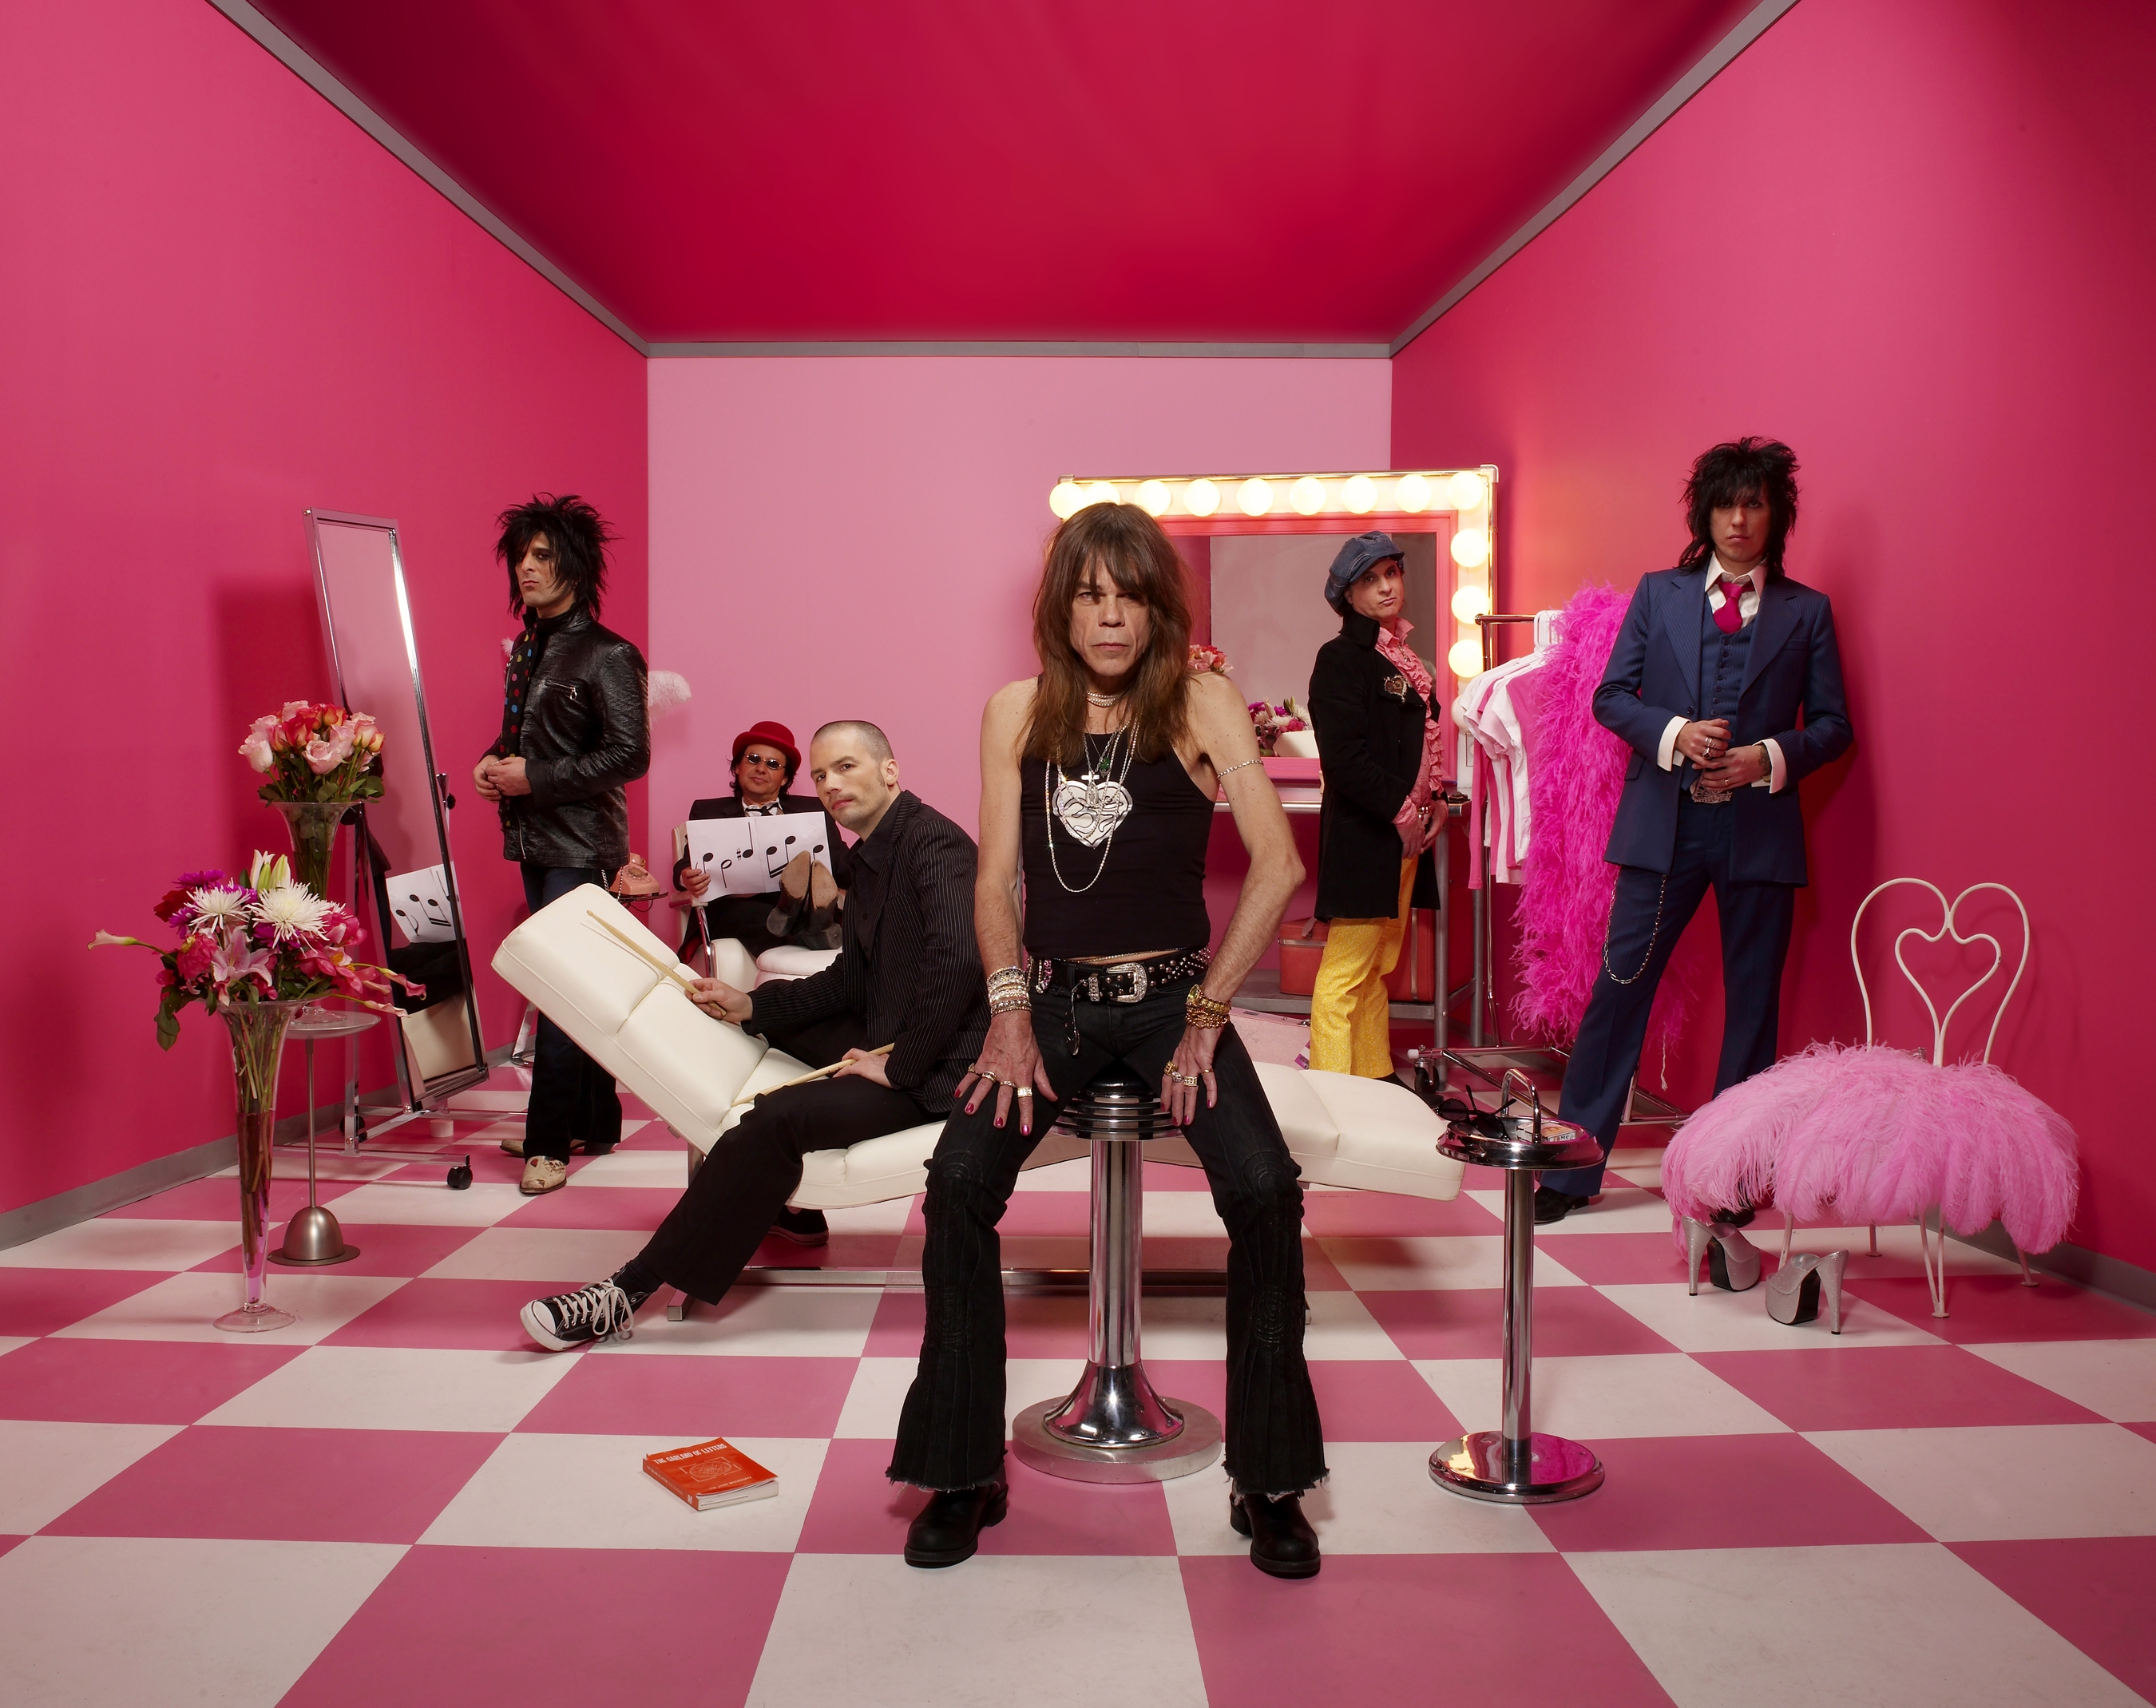 From one of the only punk bands i actually like the new york dolls